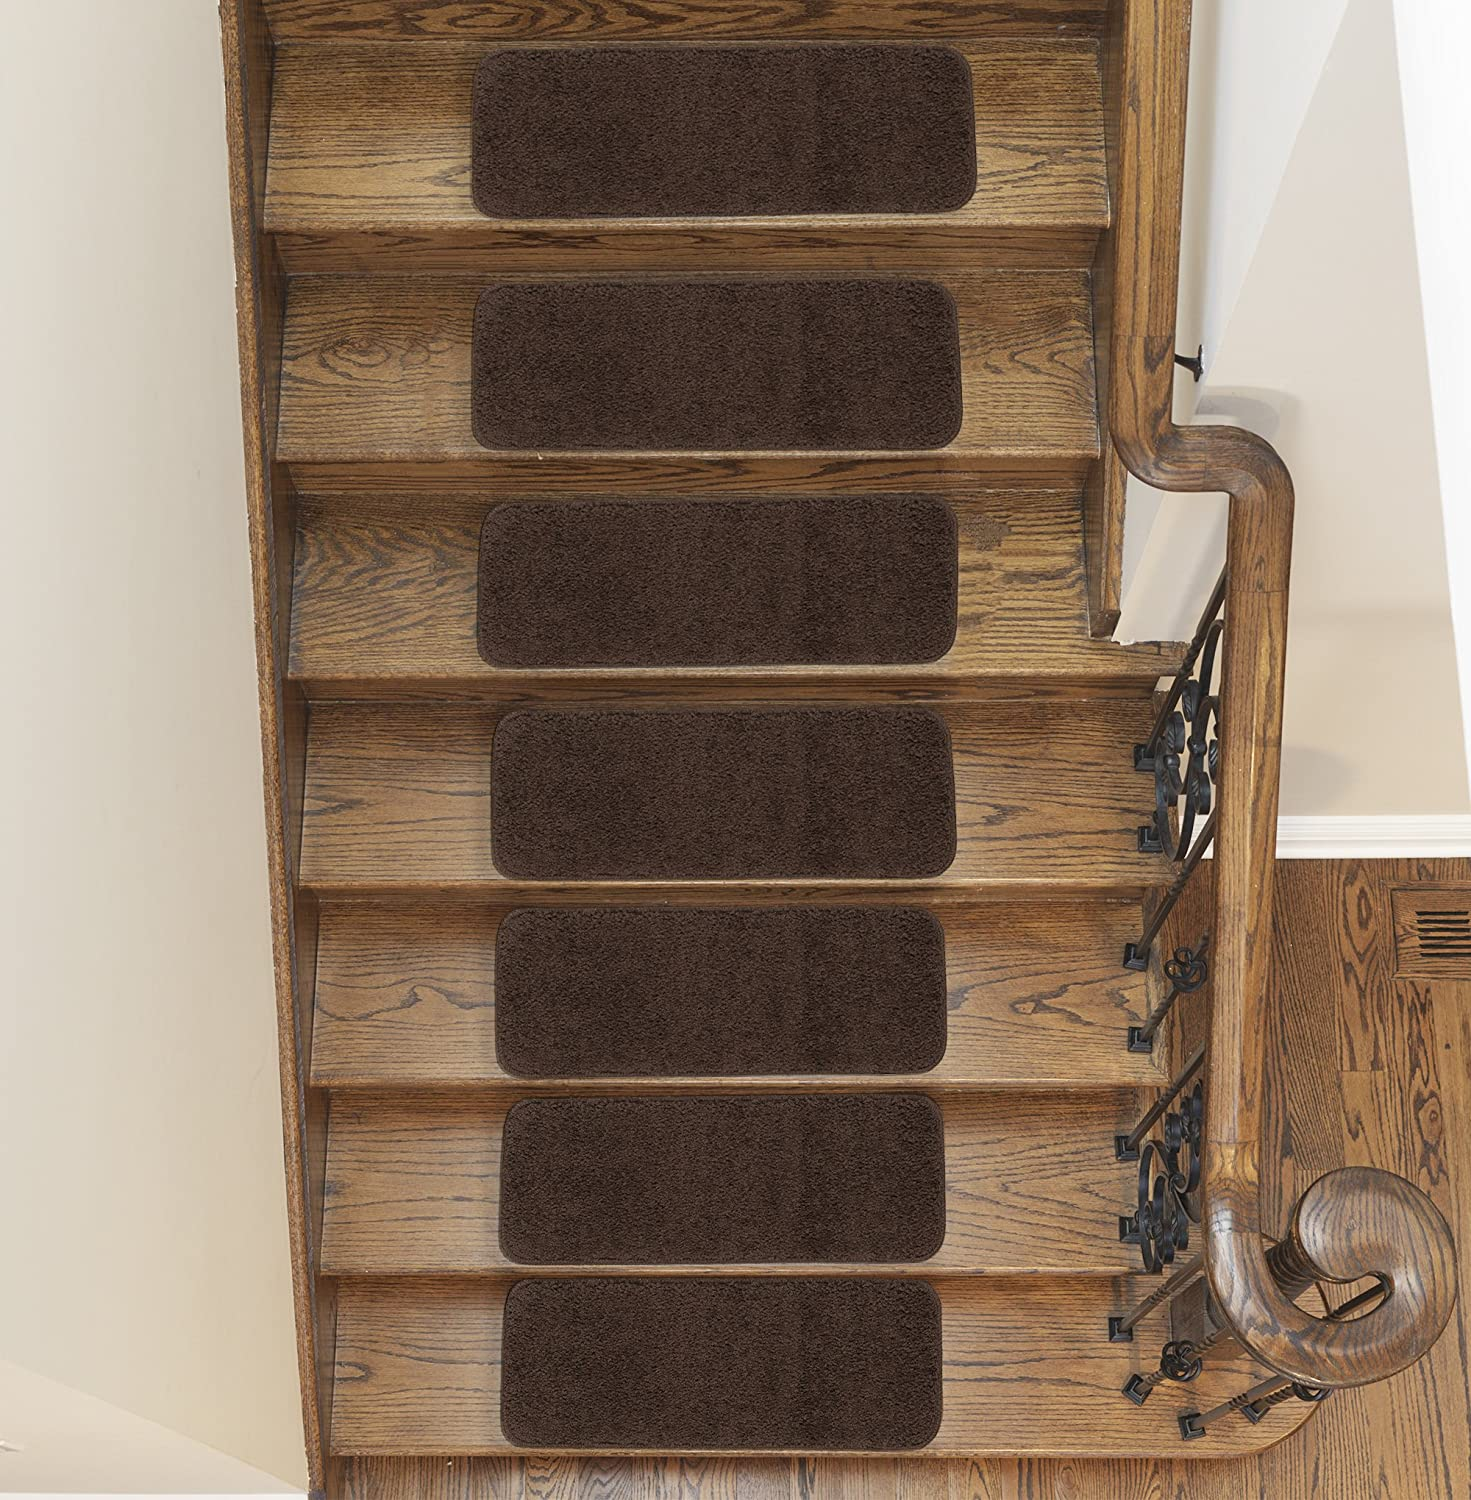 Ottomanson Comfort Collection Soft Solid (Non-Slip) Shag Carpet Stair Treads, 9 X 26, Brown, 5 Pack 9 X 26 CST6008-5Pack